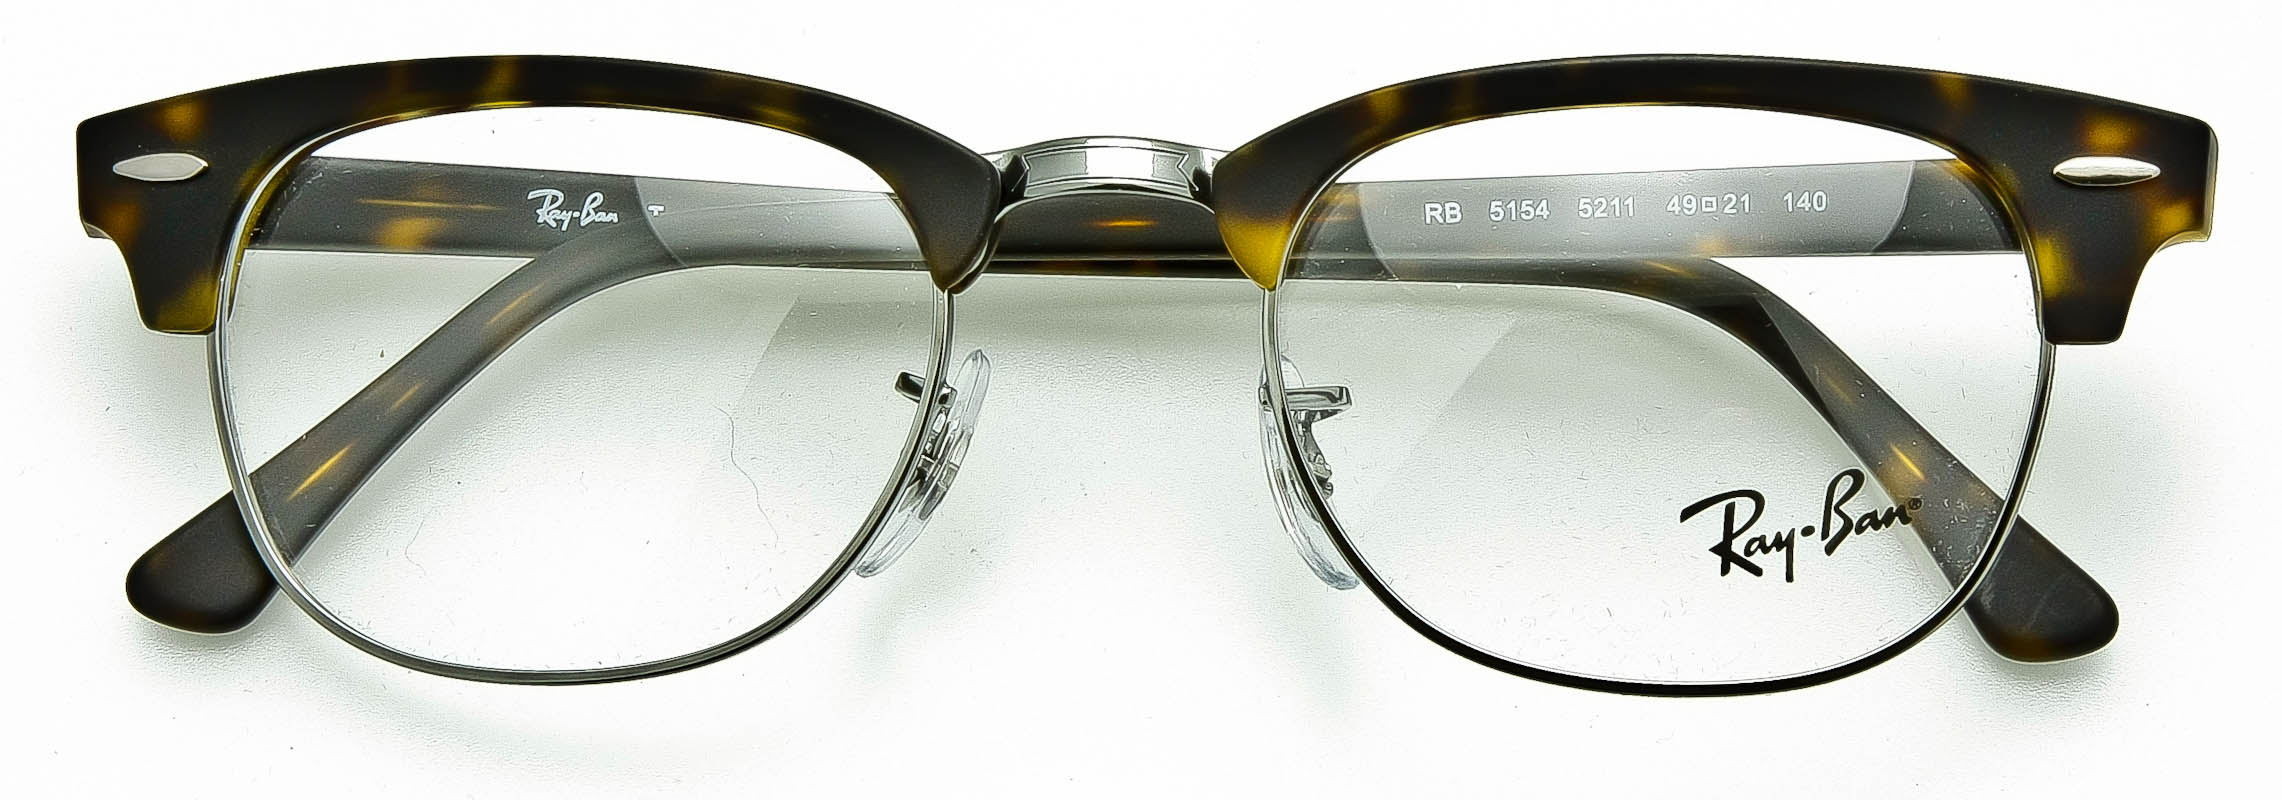 RAY-BAN EYEGLASS OPTICAL FRAME Clubmaster Matte Tort-Silver RB5154M ...